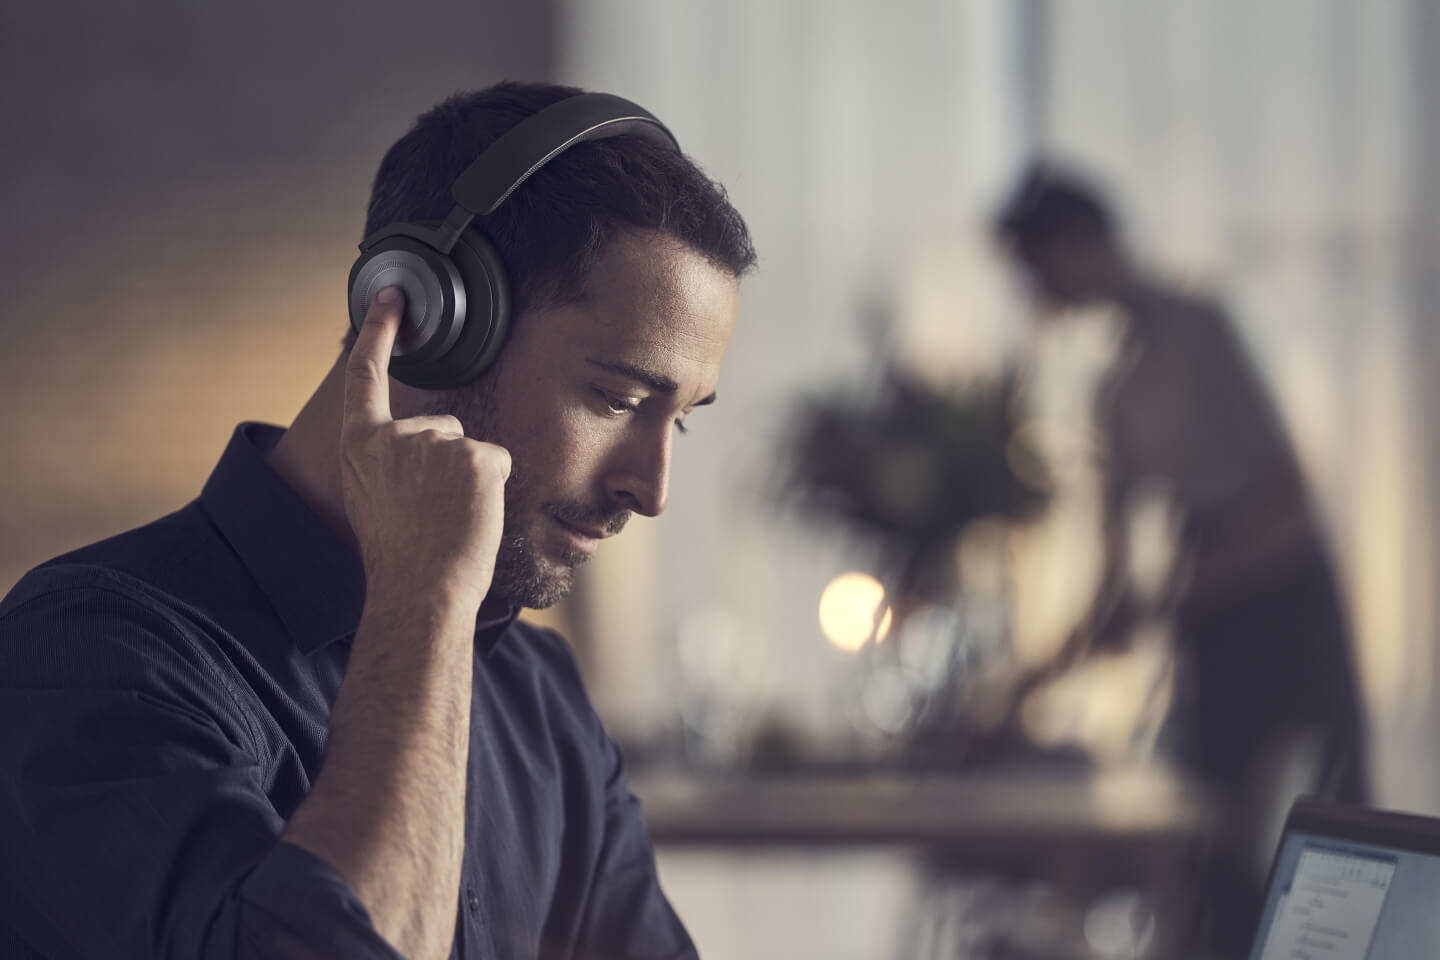 BeoPLay HX frompolished aluminum und natural leather